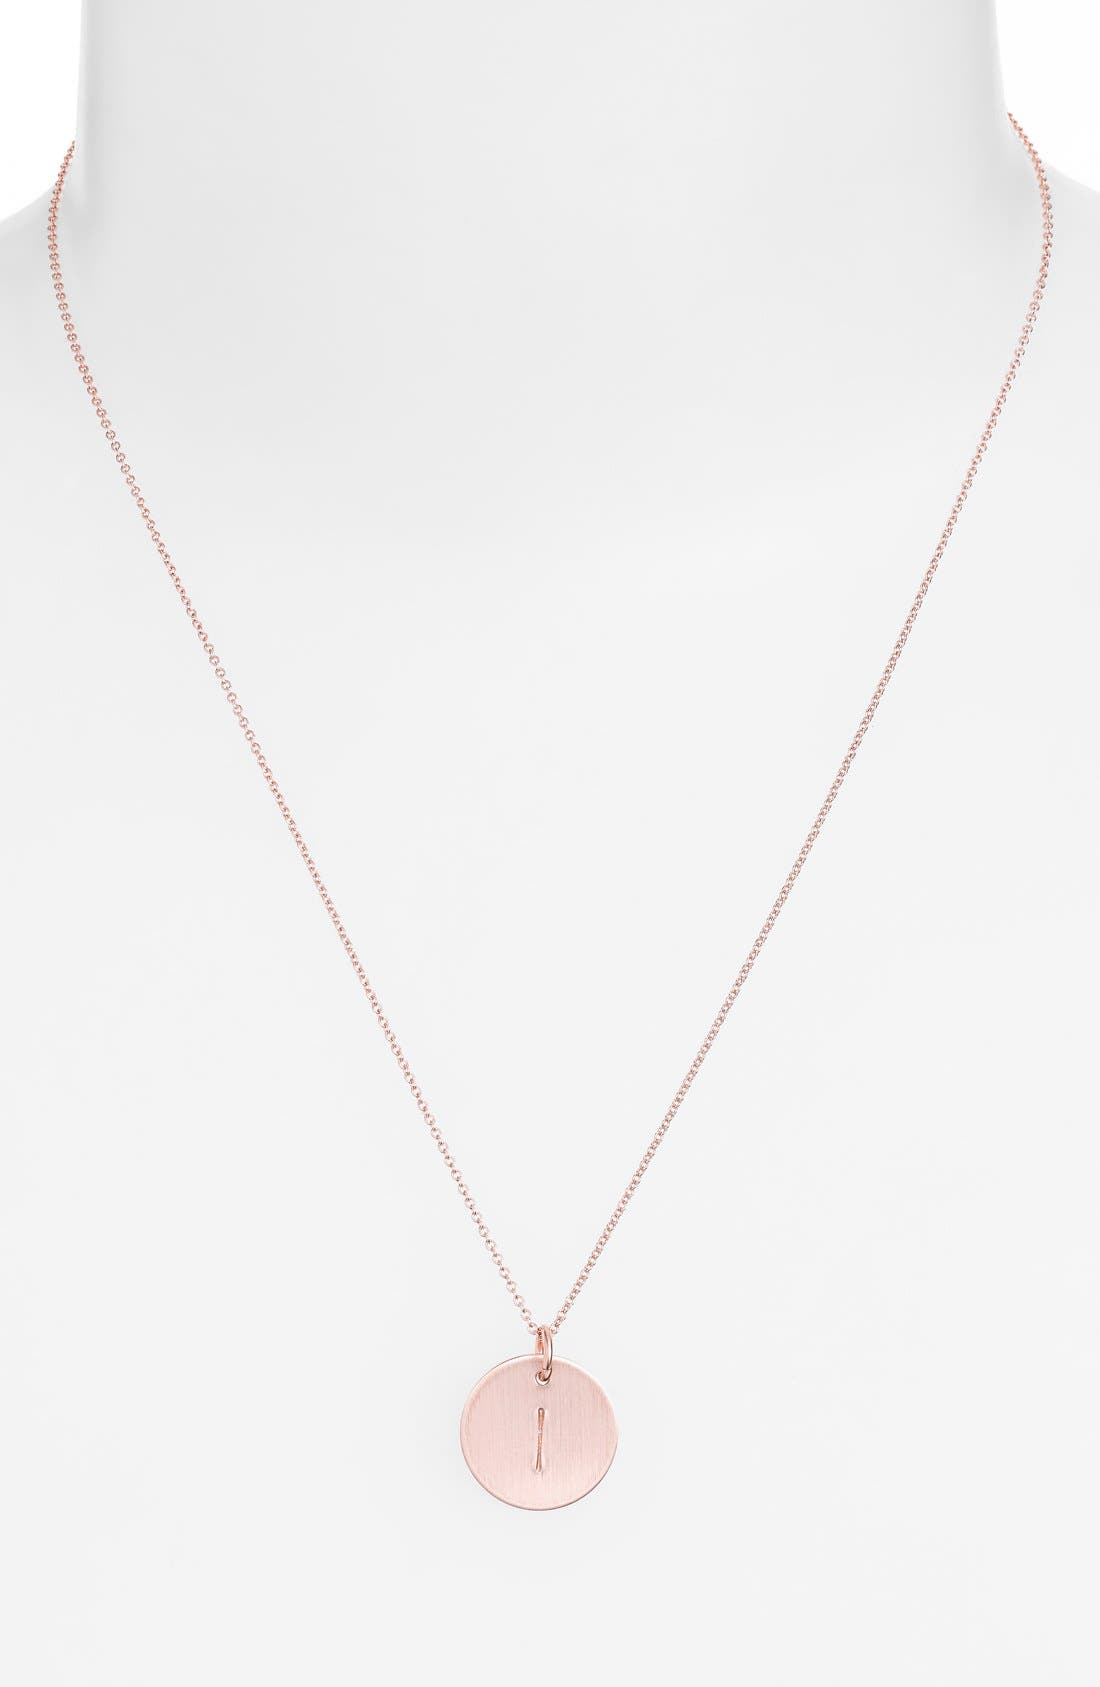 14k-Rose Gold Fill Initial Disc Necklace,                             Alternate thumbnail 35, color,